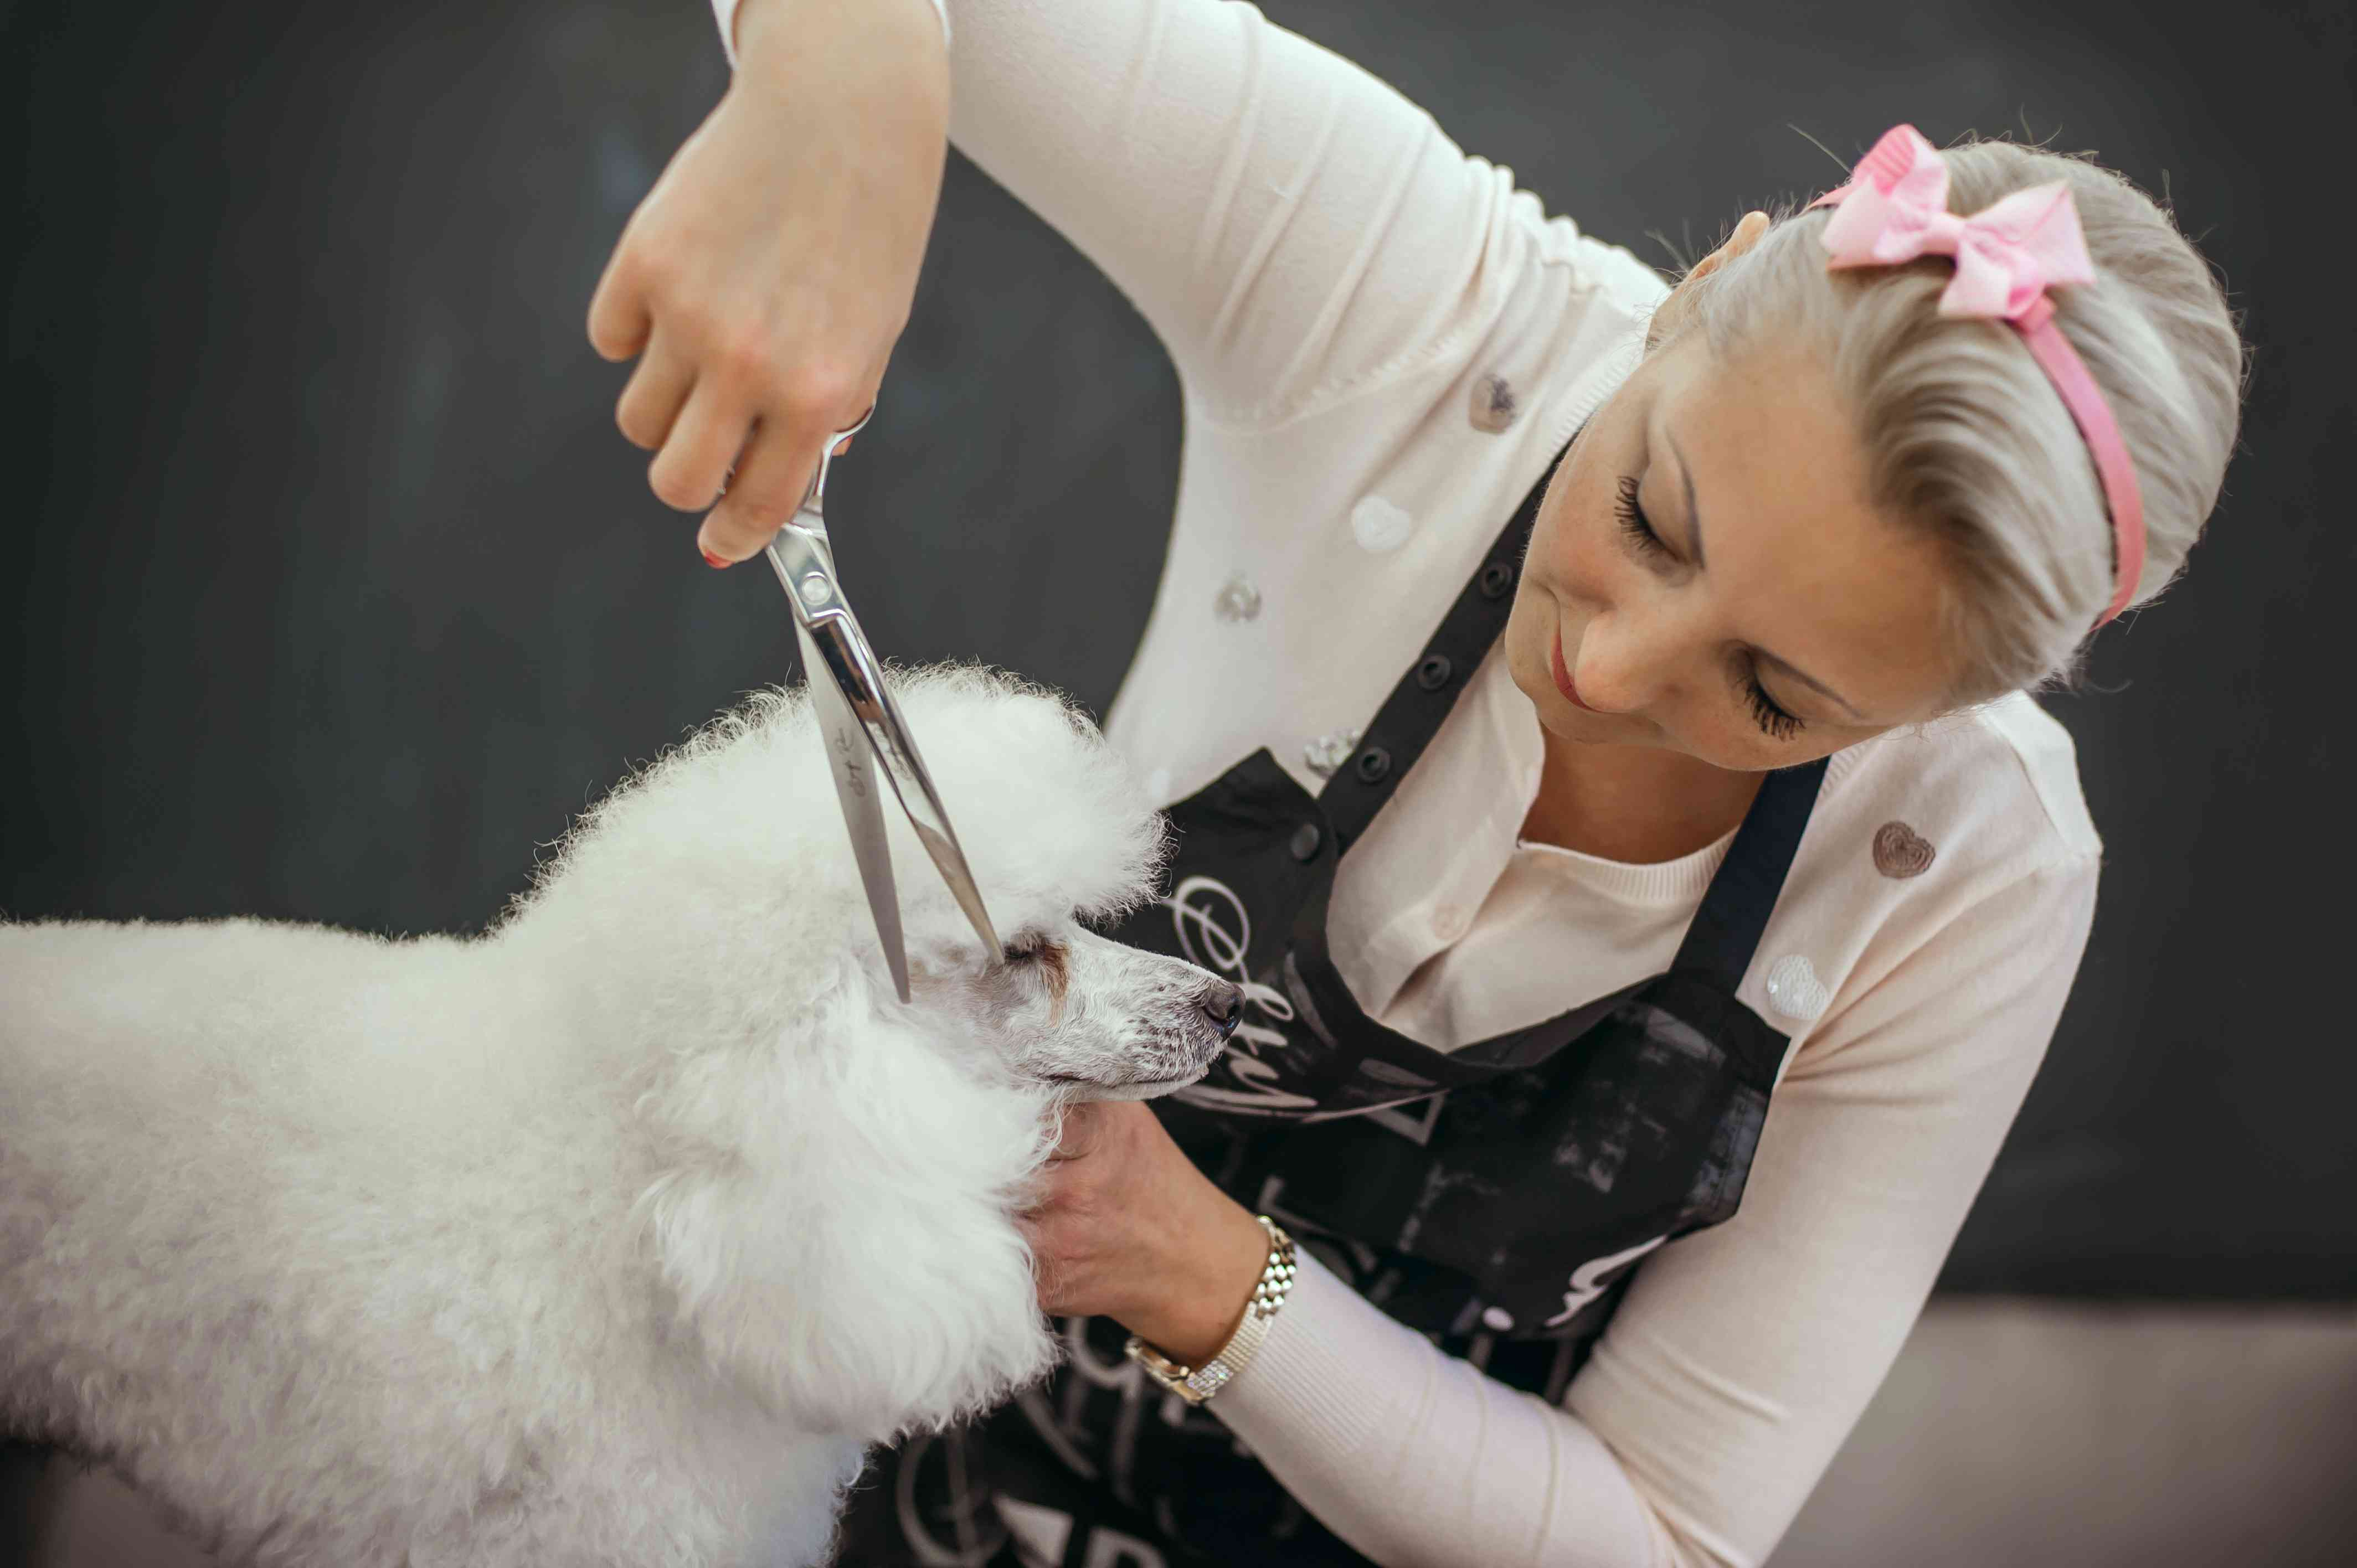 A white Toy Poodle getting a hair cut.